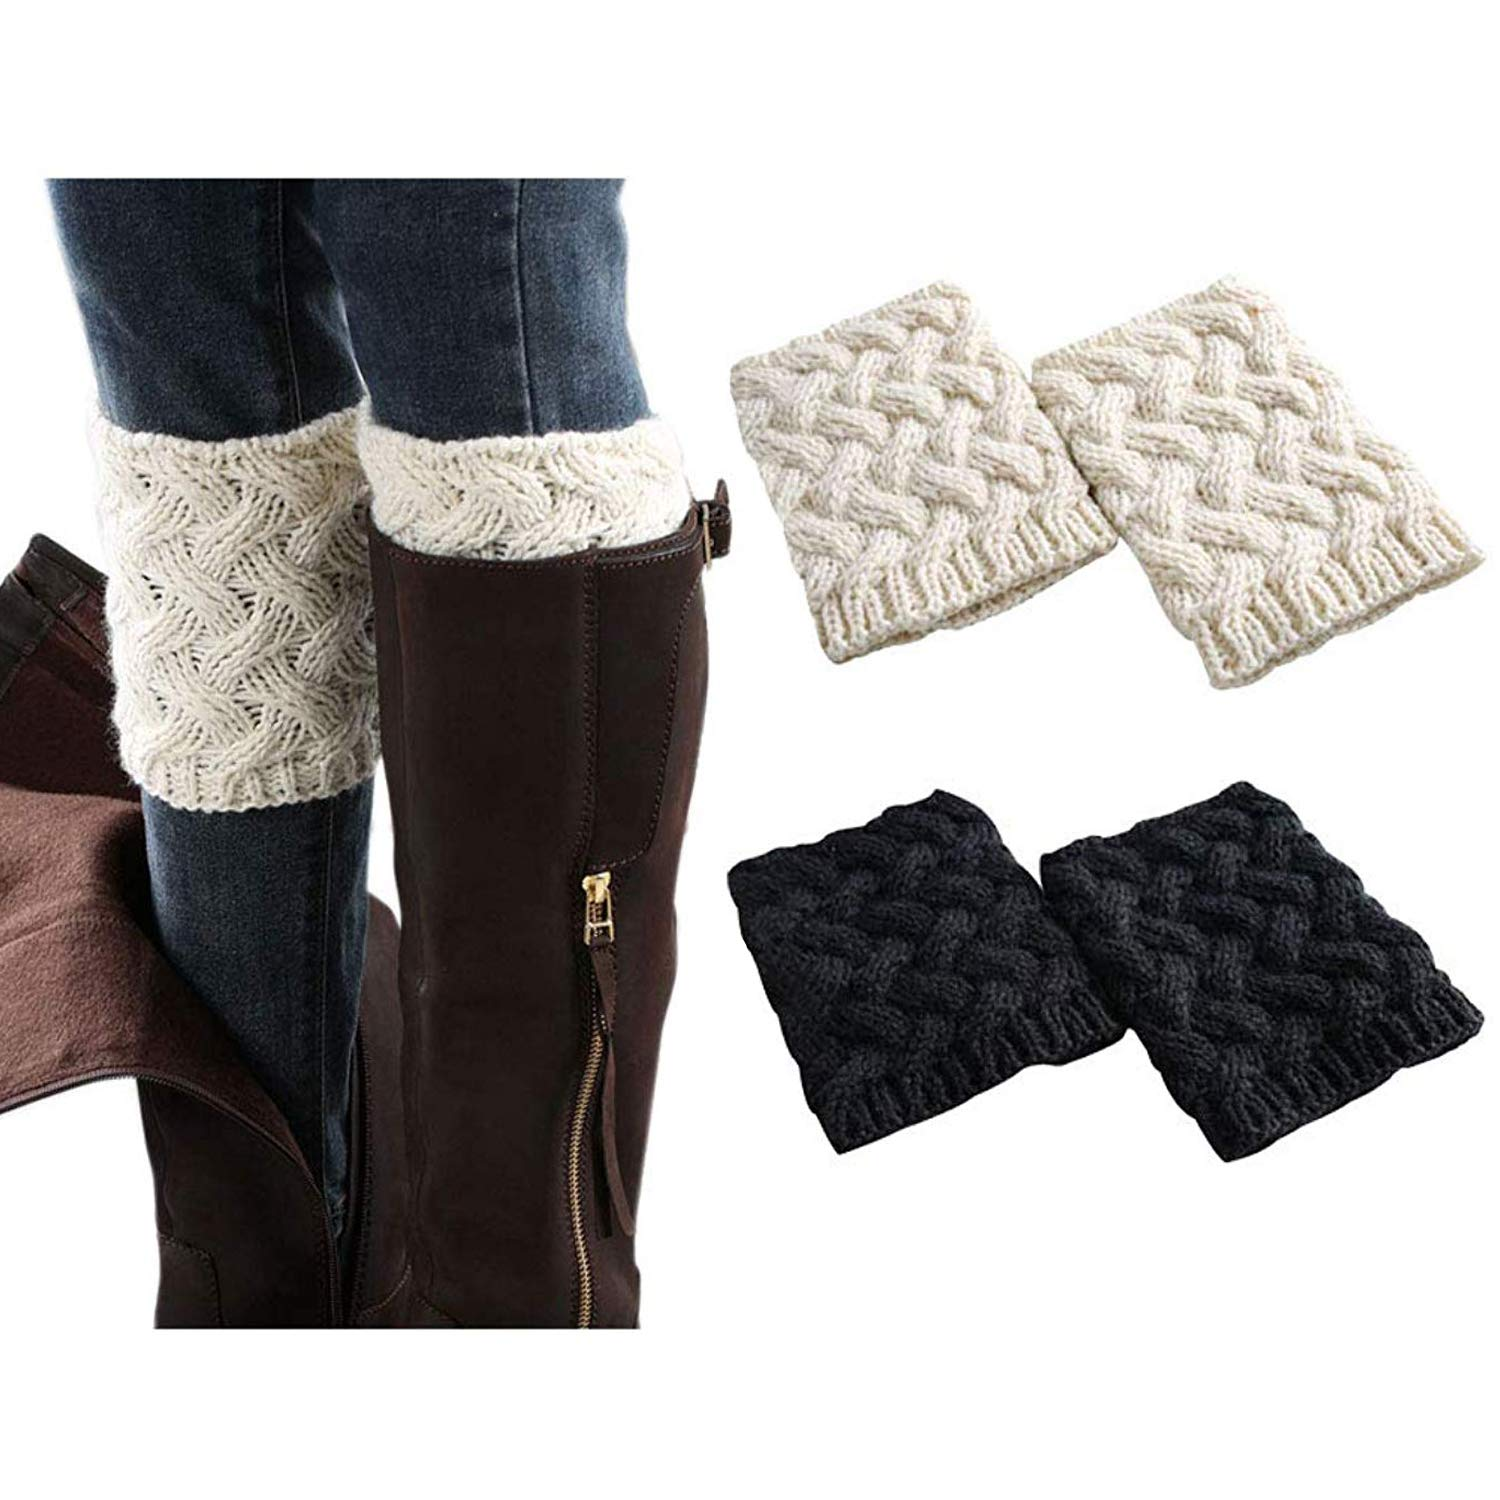 2pairs Women Boot Cuffs  Winter Knitted Boots Socks Crochet Short Leg Warmers